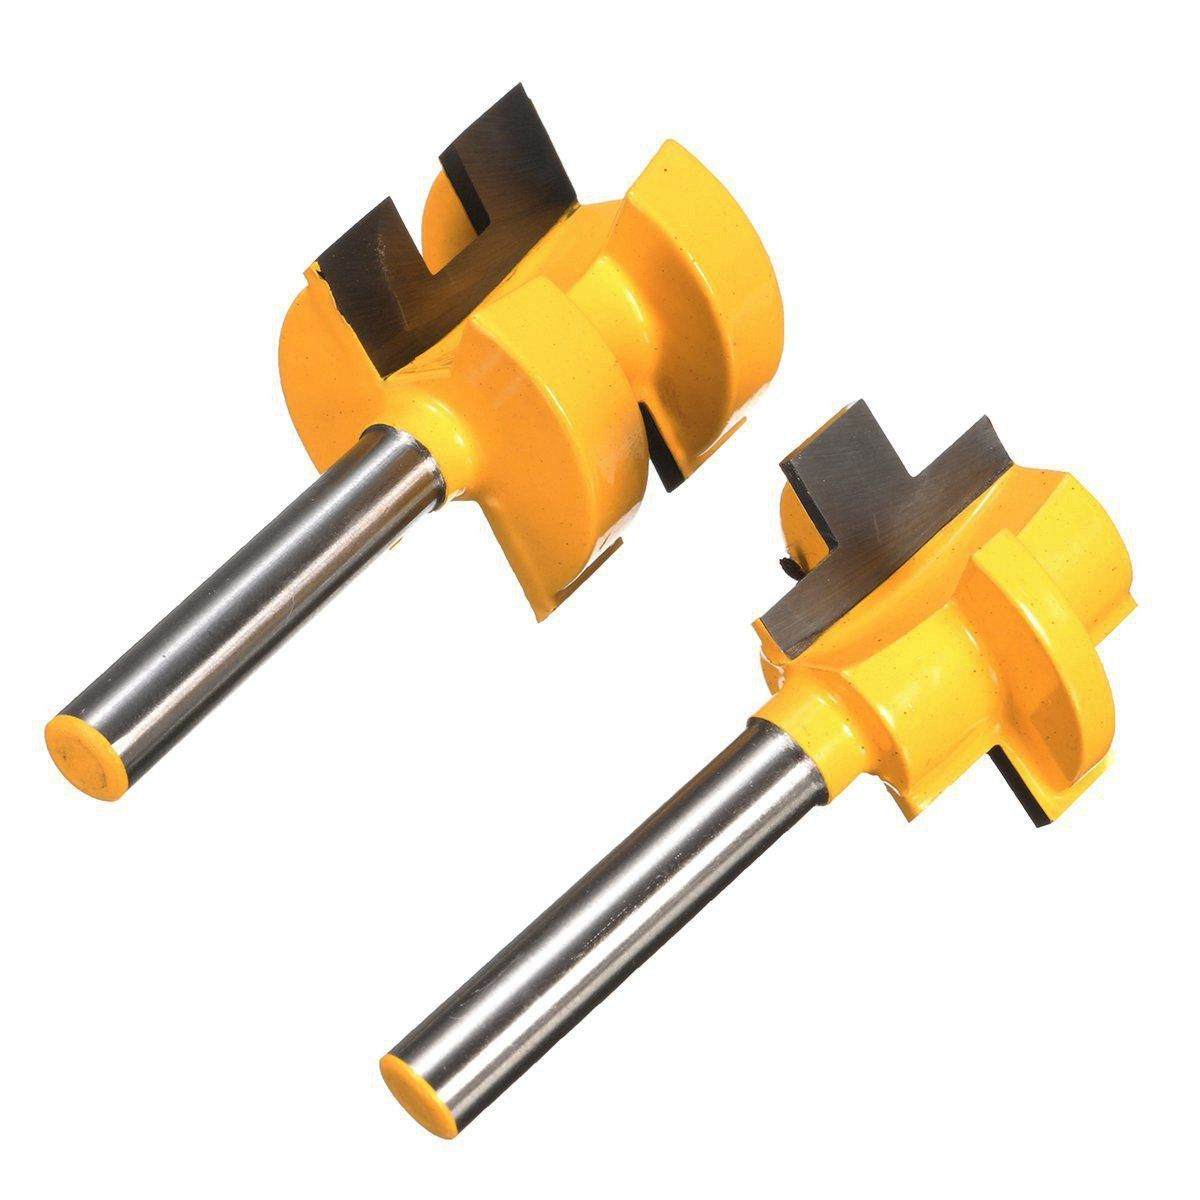 2Pcs Tongue & Groove Huge Crown Molding Router Bit 1/4 inch Shank Wood Milling Cutter 2pcs tongue